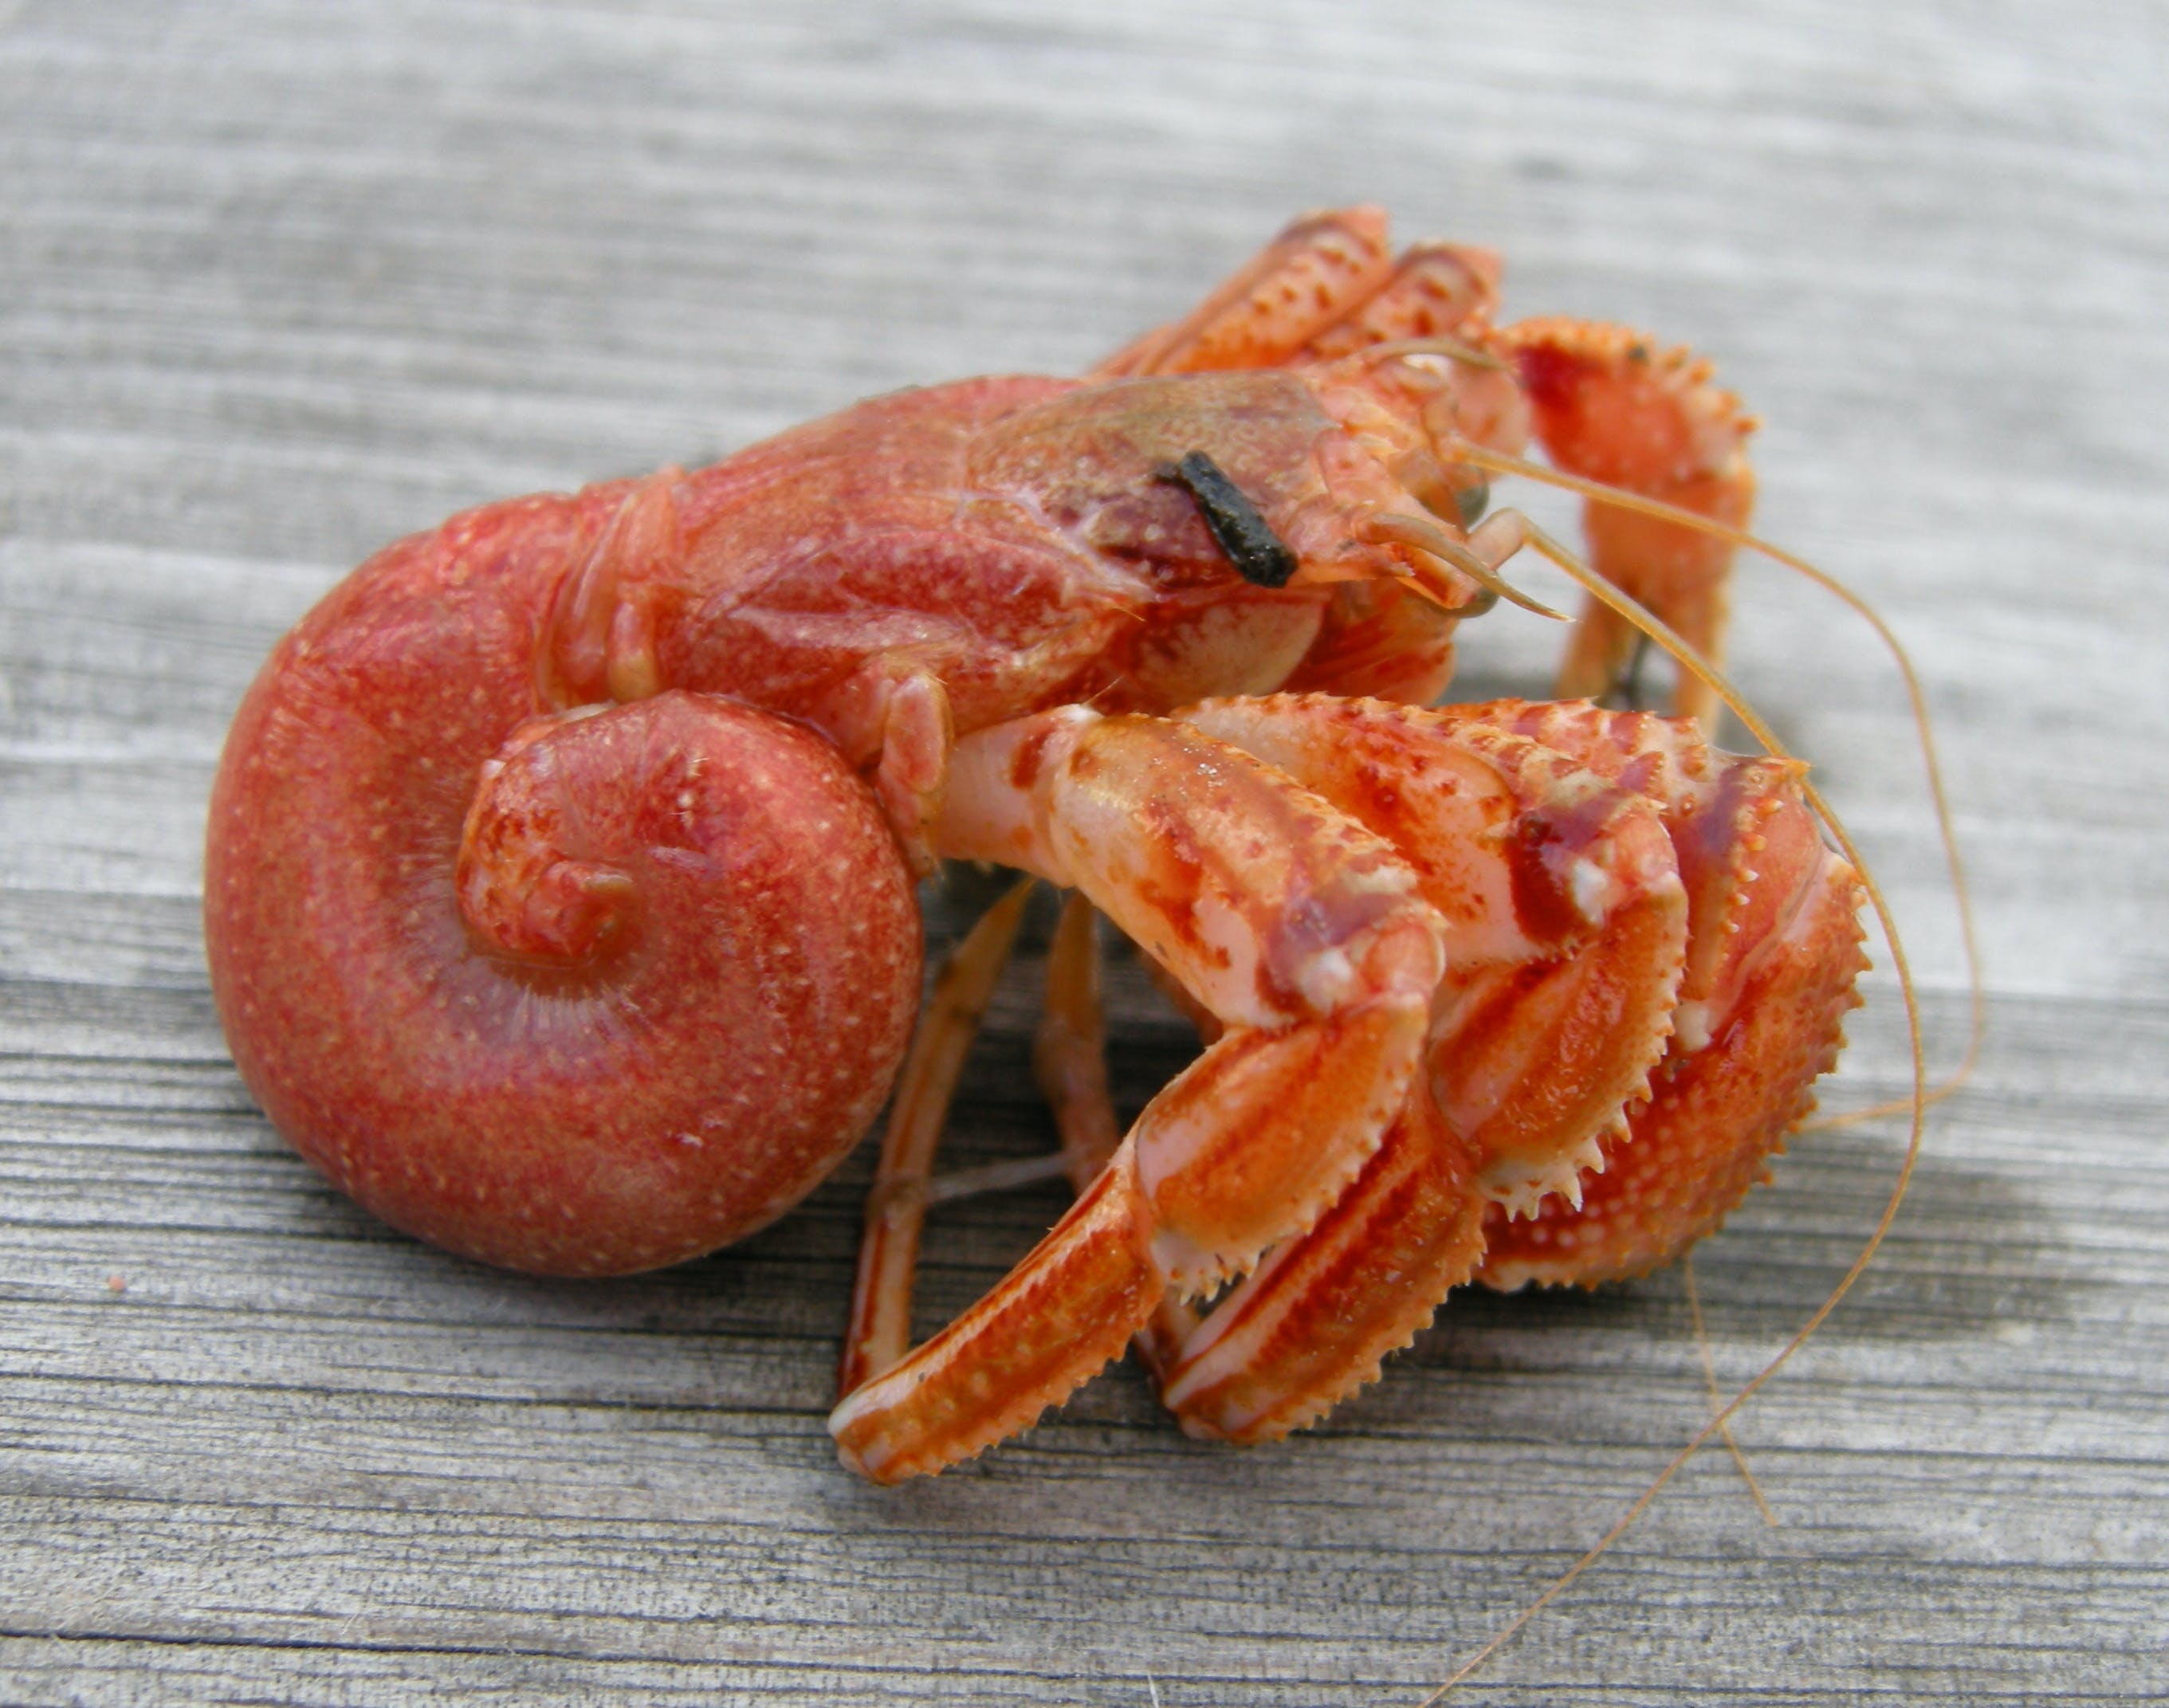 shell-less hermit crab